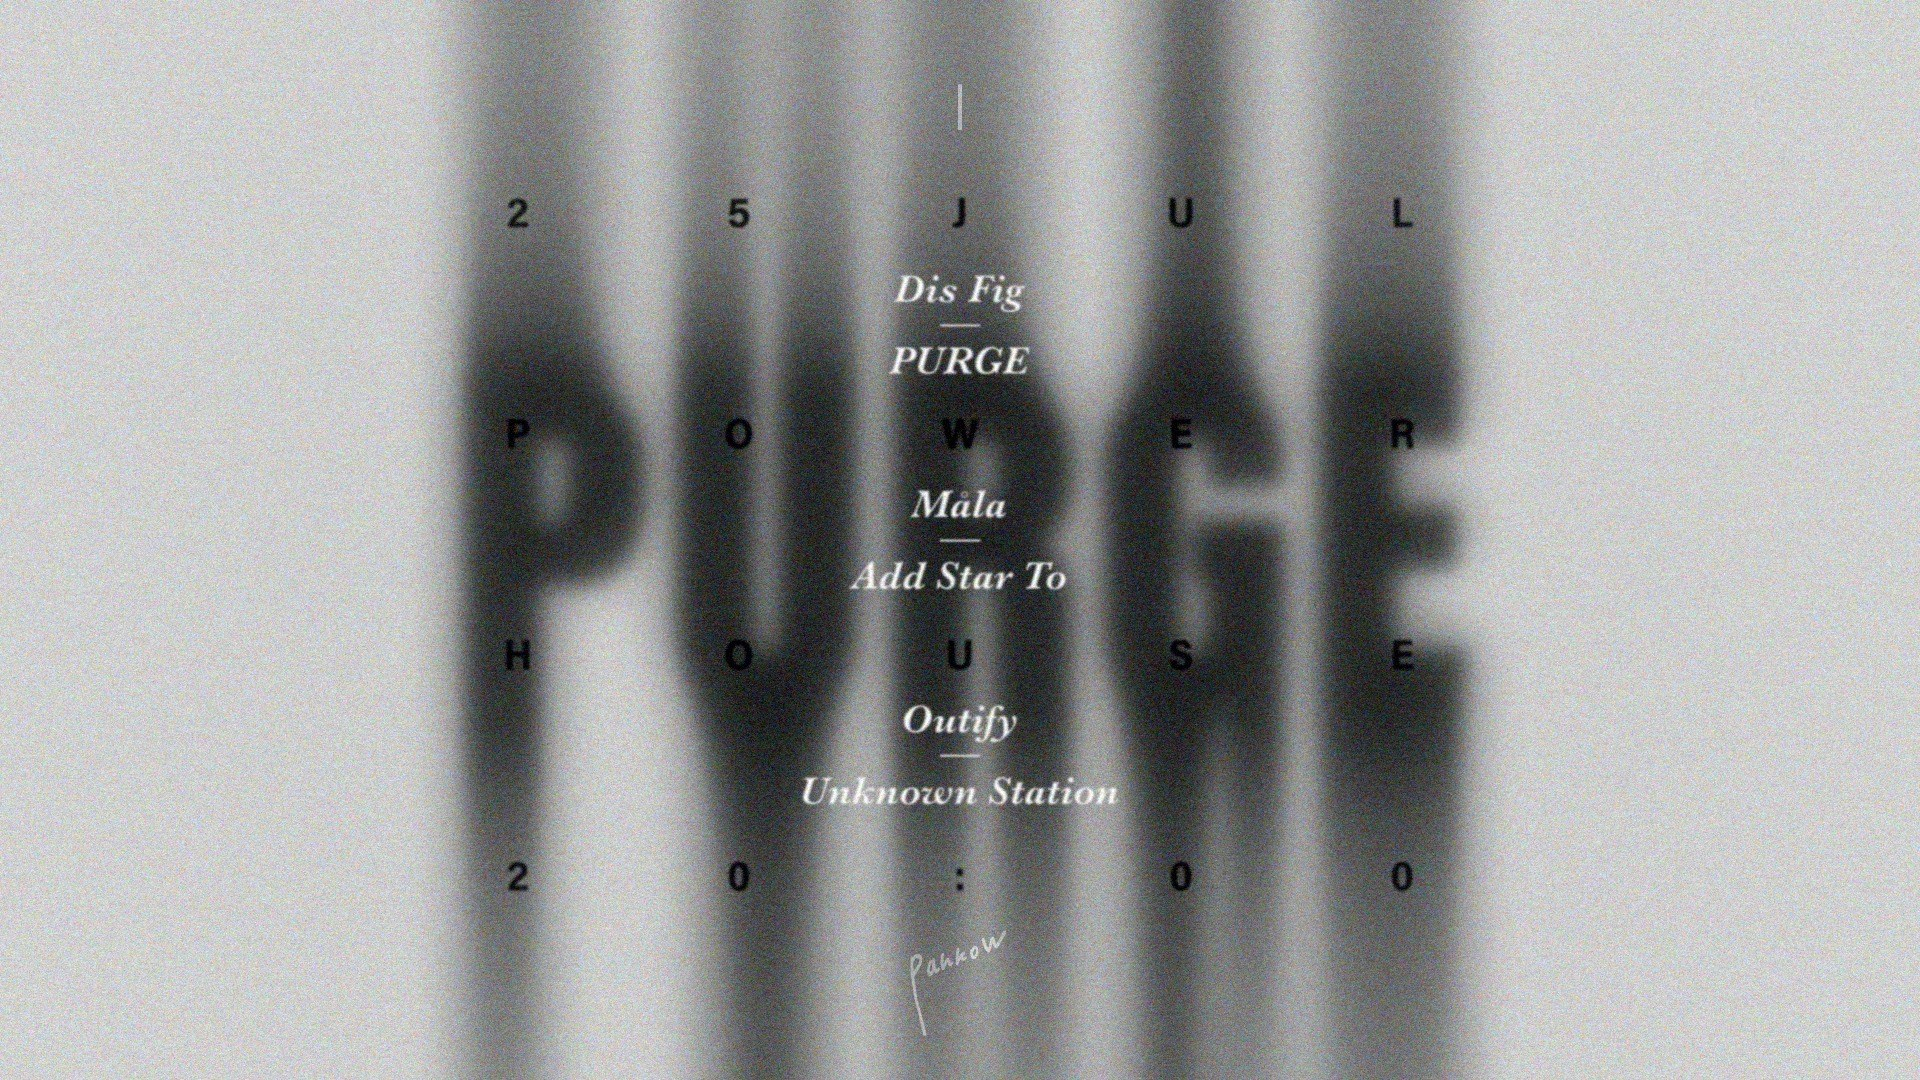 RA: Purge / PANKOW at Powerhouse Moscow, Moscow